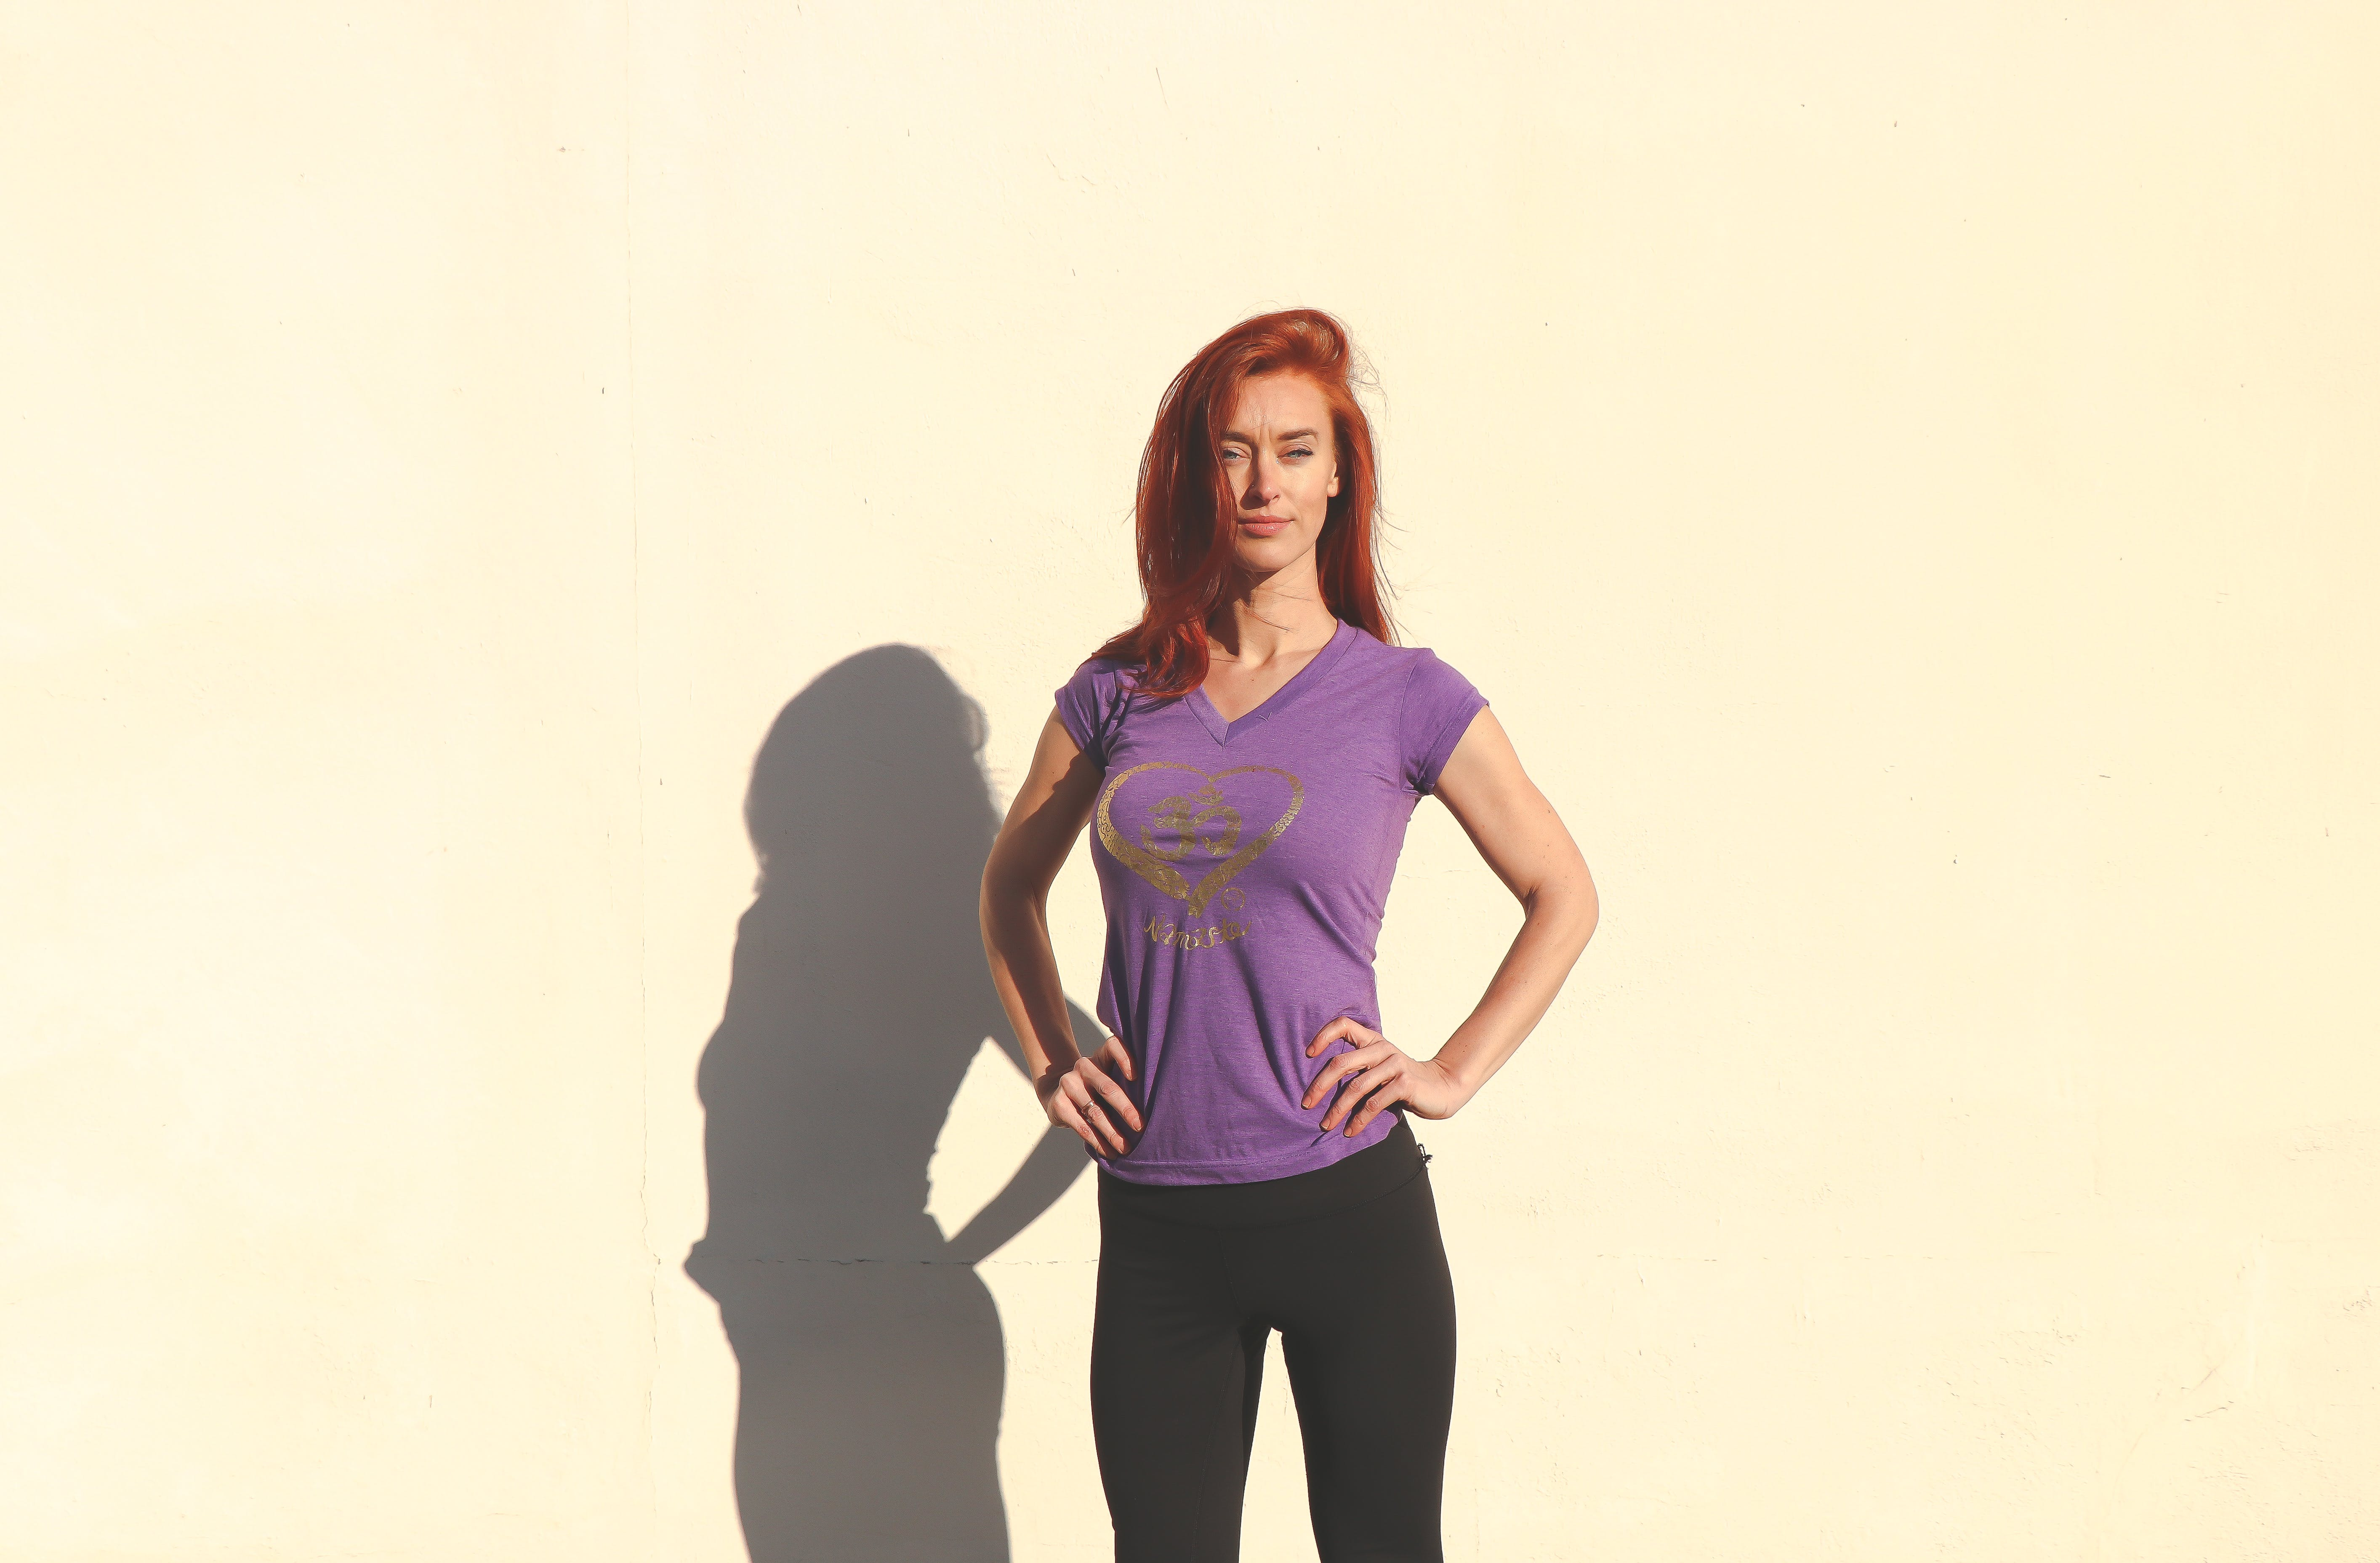 Woman Wearing Purple Shirt and Black Pants